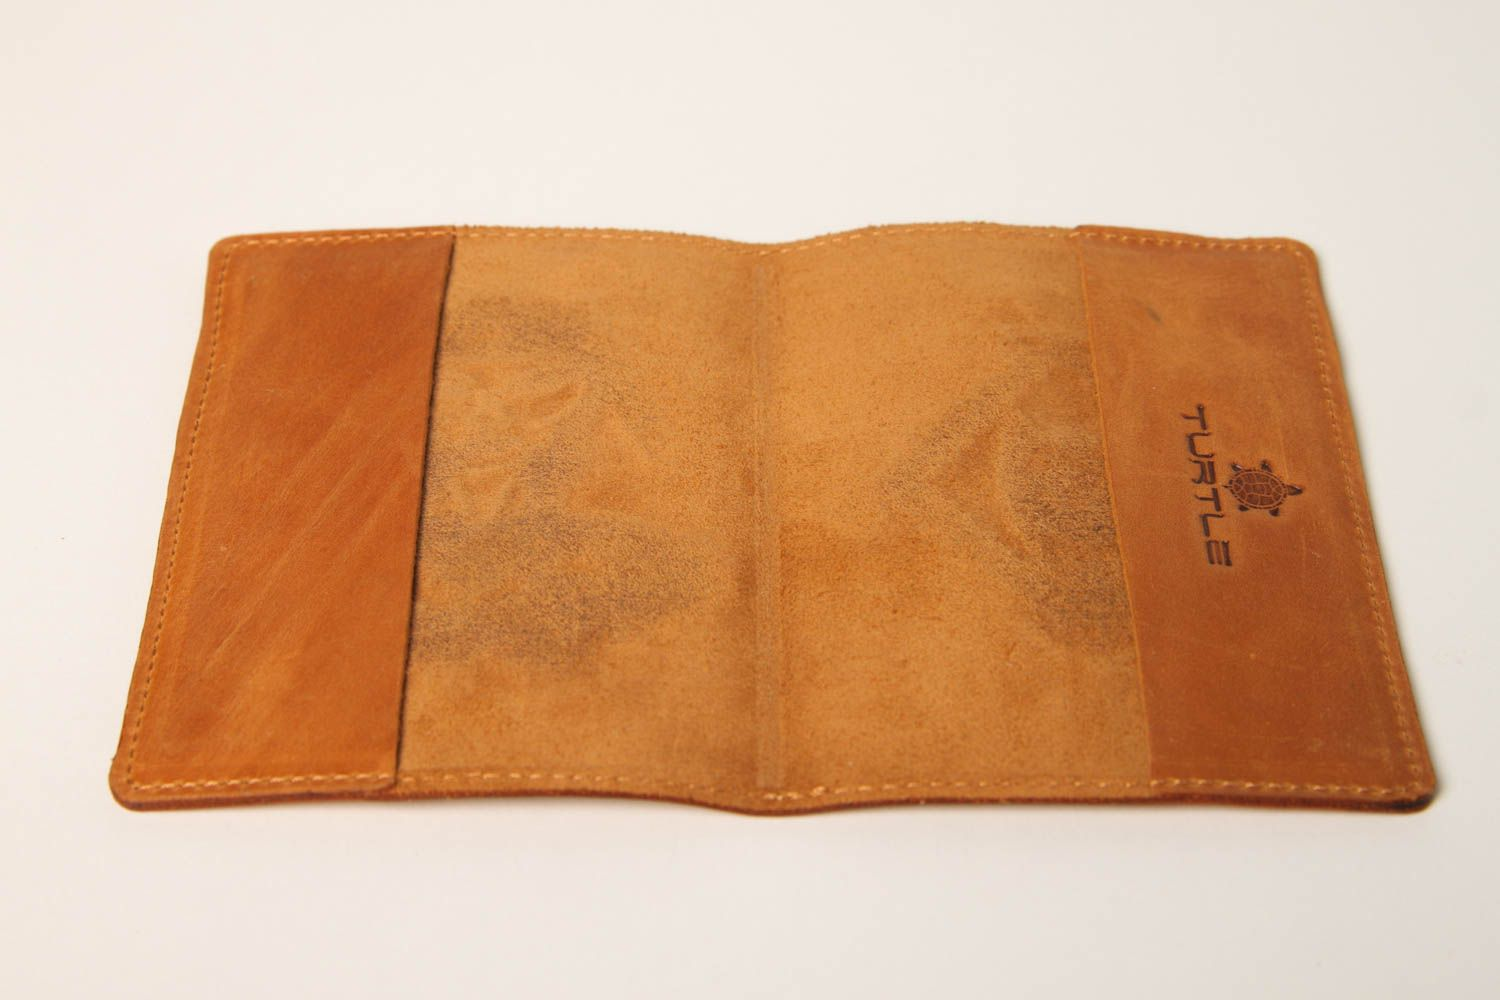 covers for documents Unusual handmade passport cover leather goods handmade accessories gift ideas - MADEheart.com